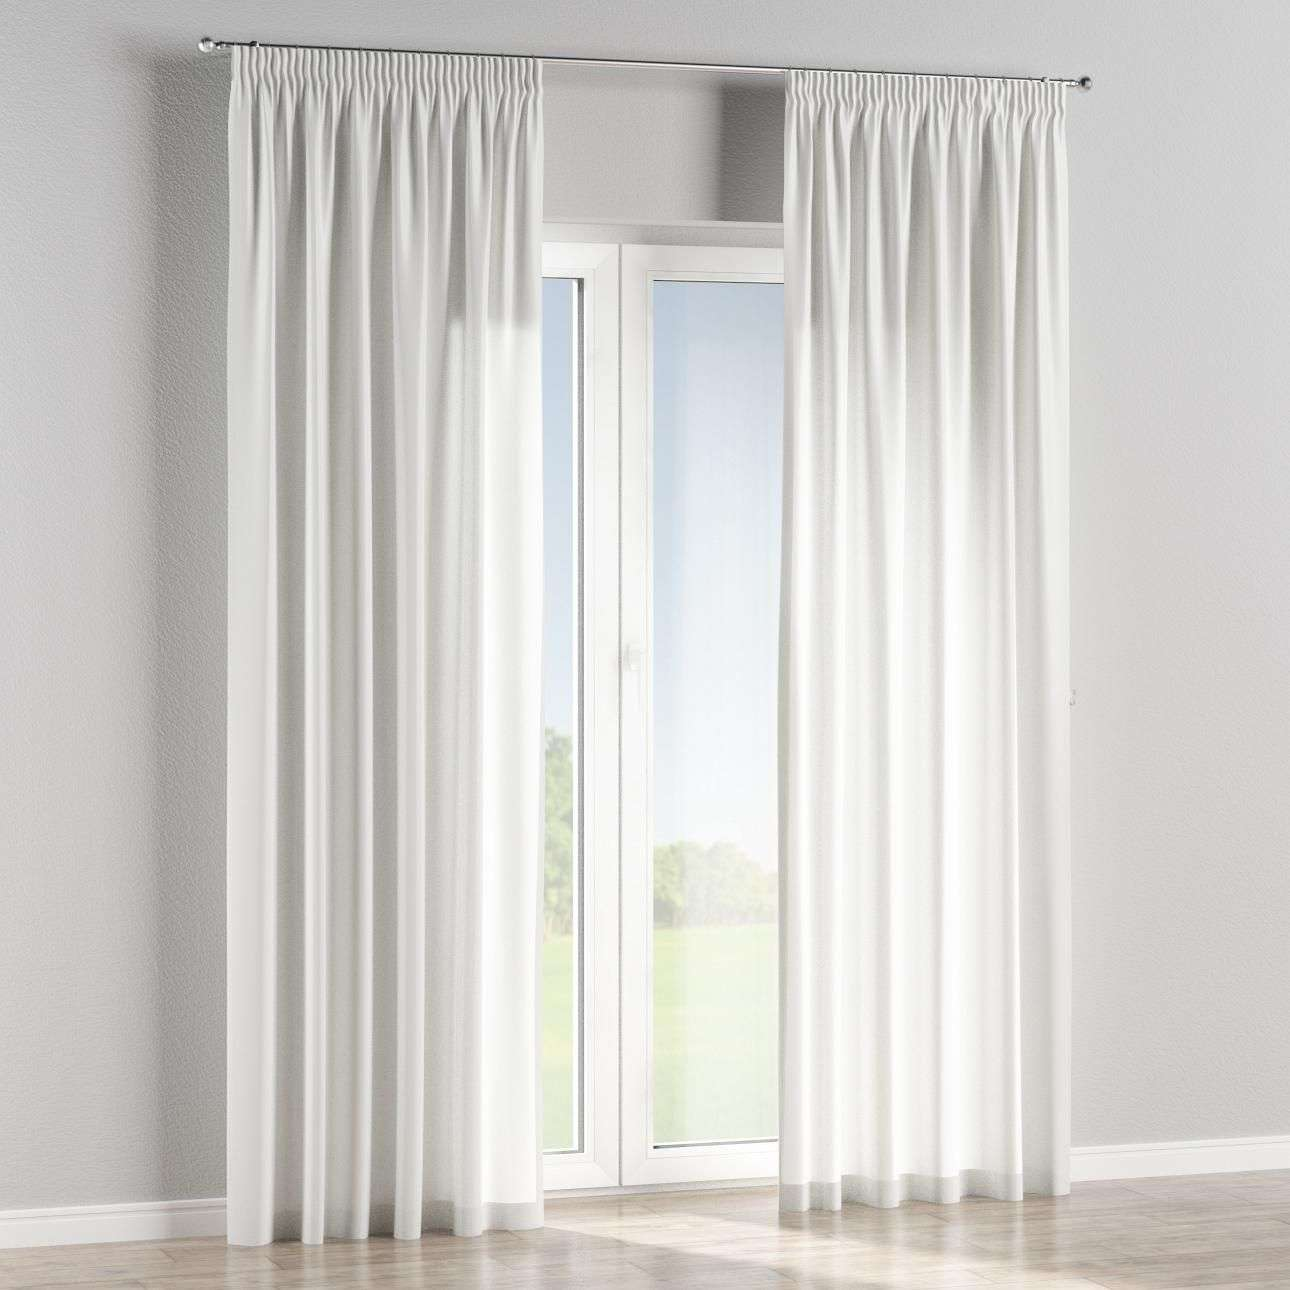 Pencil pleat curtains in collection Ashley, fabric: 137-66